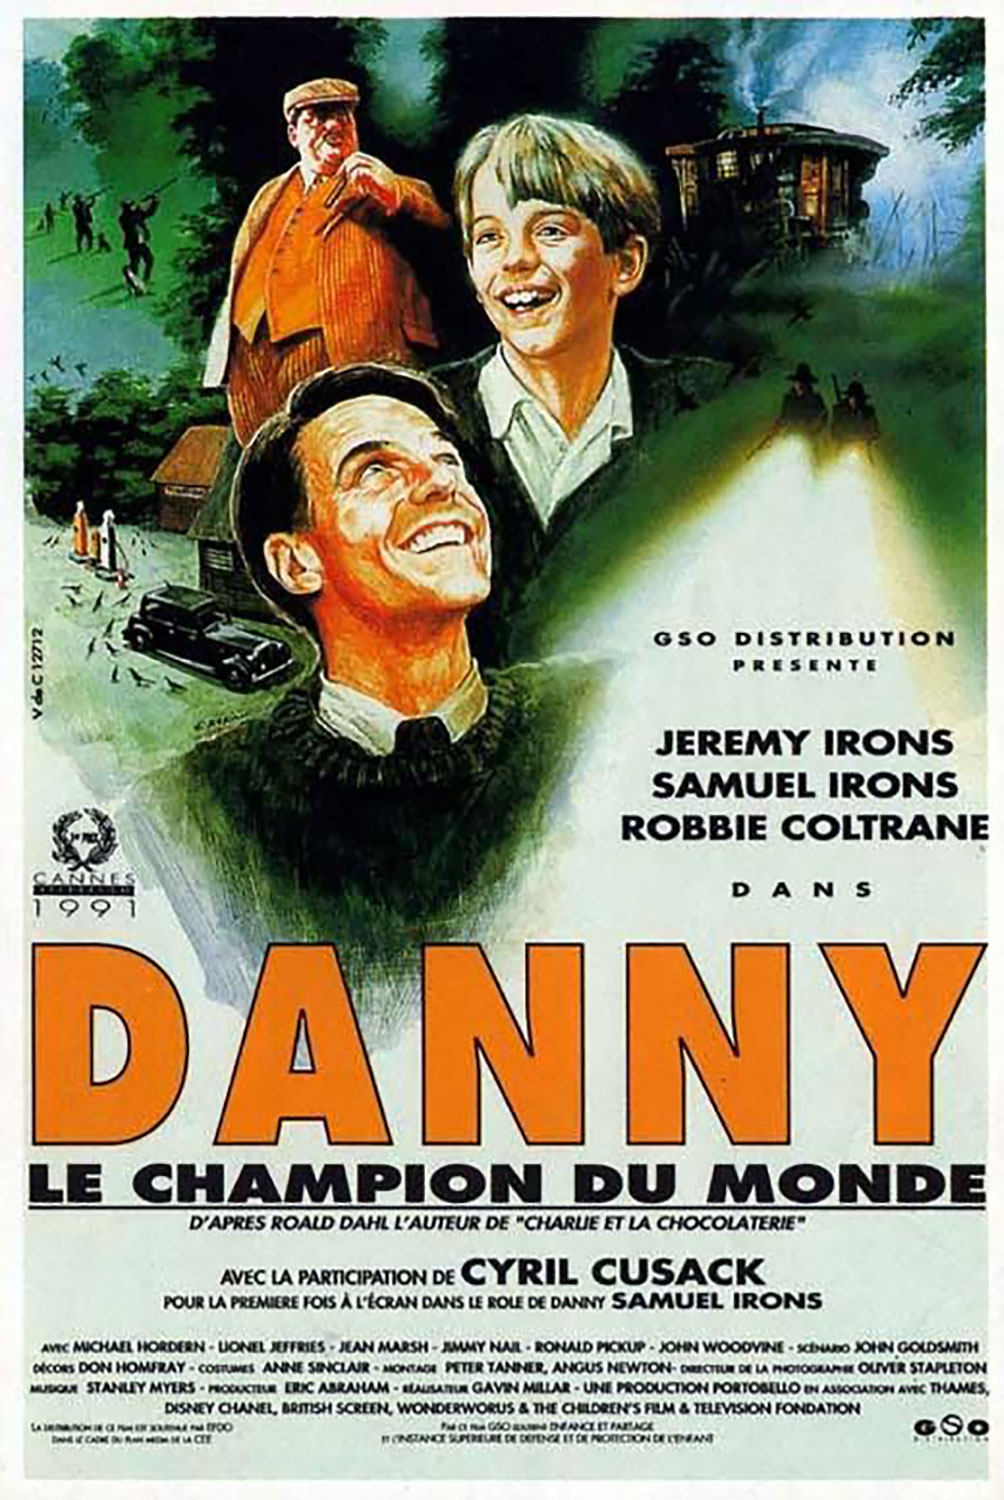 Affiche poster danny champion monde world Roald Dahl disney channel